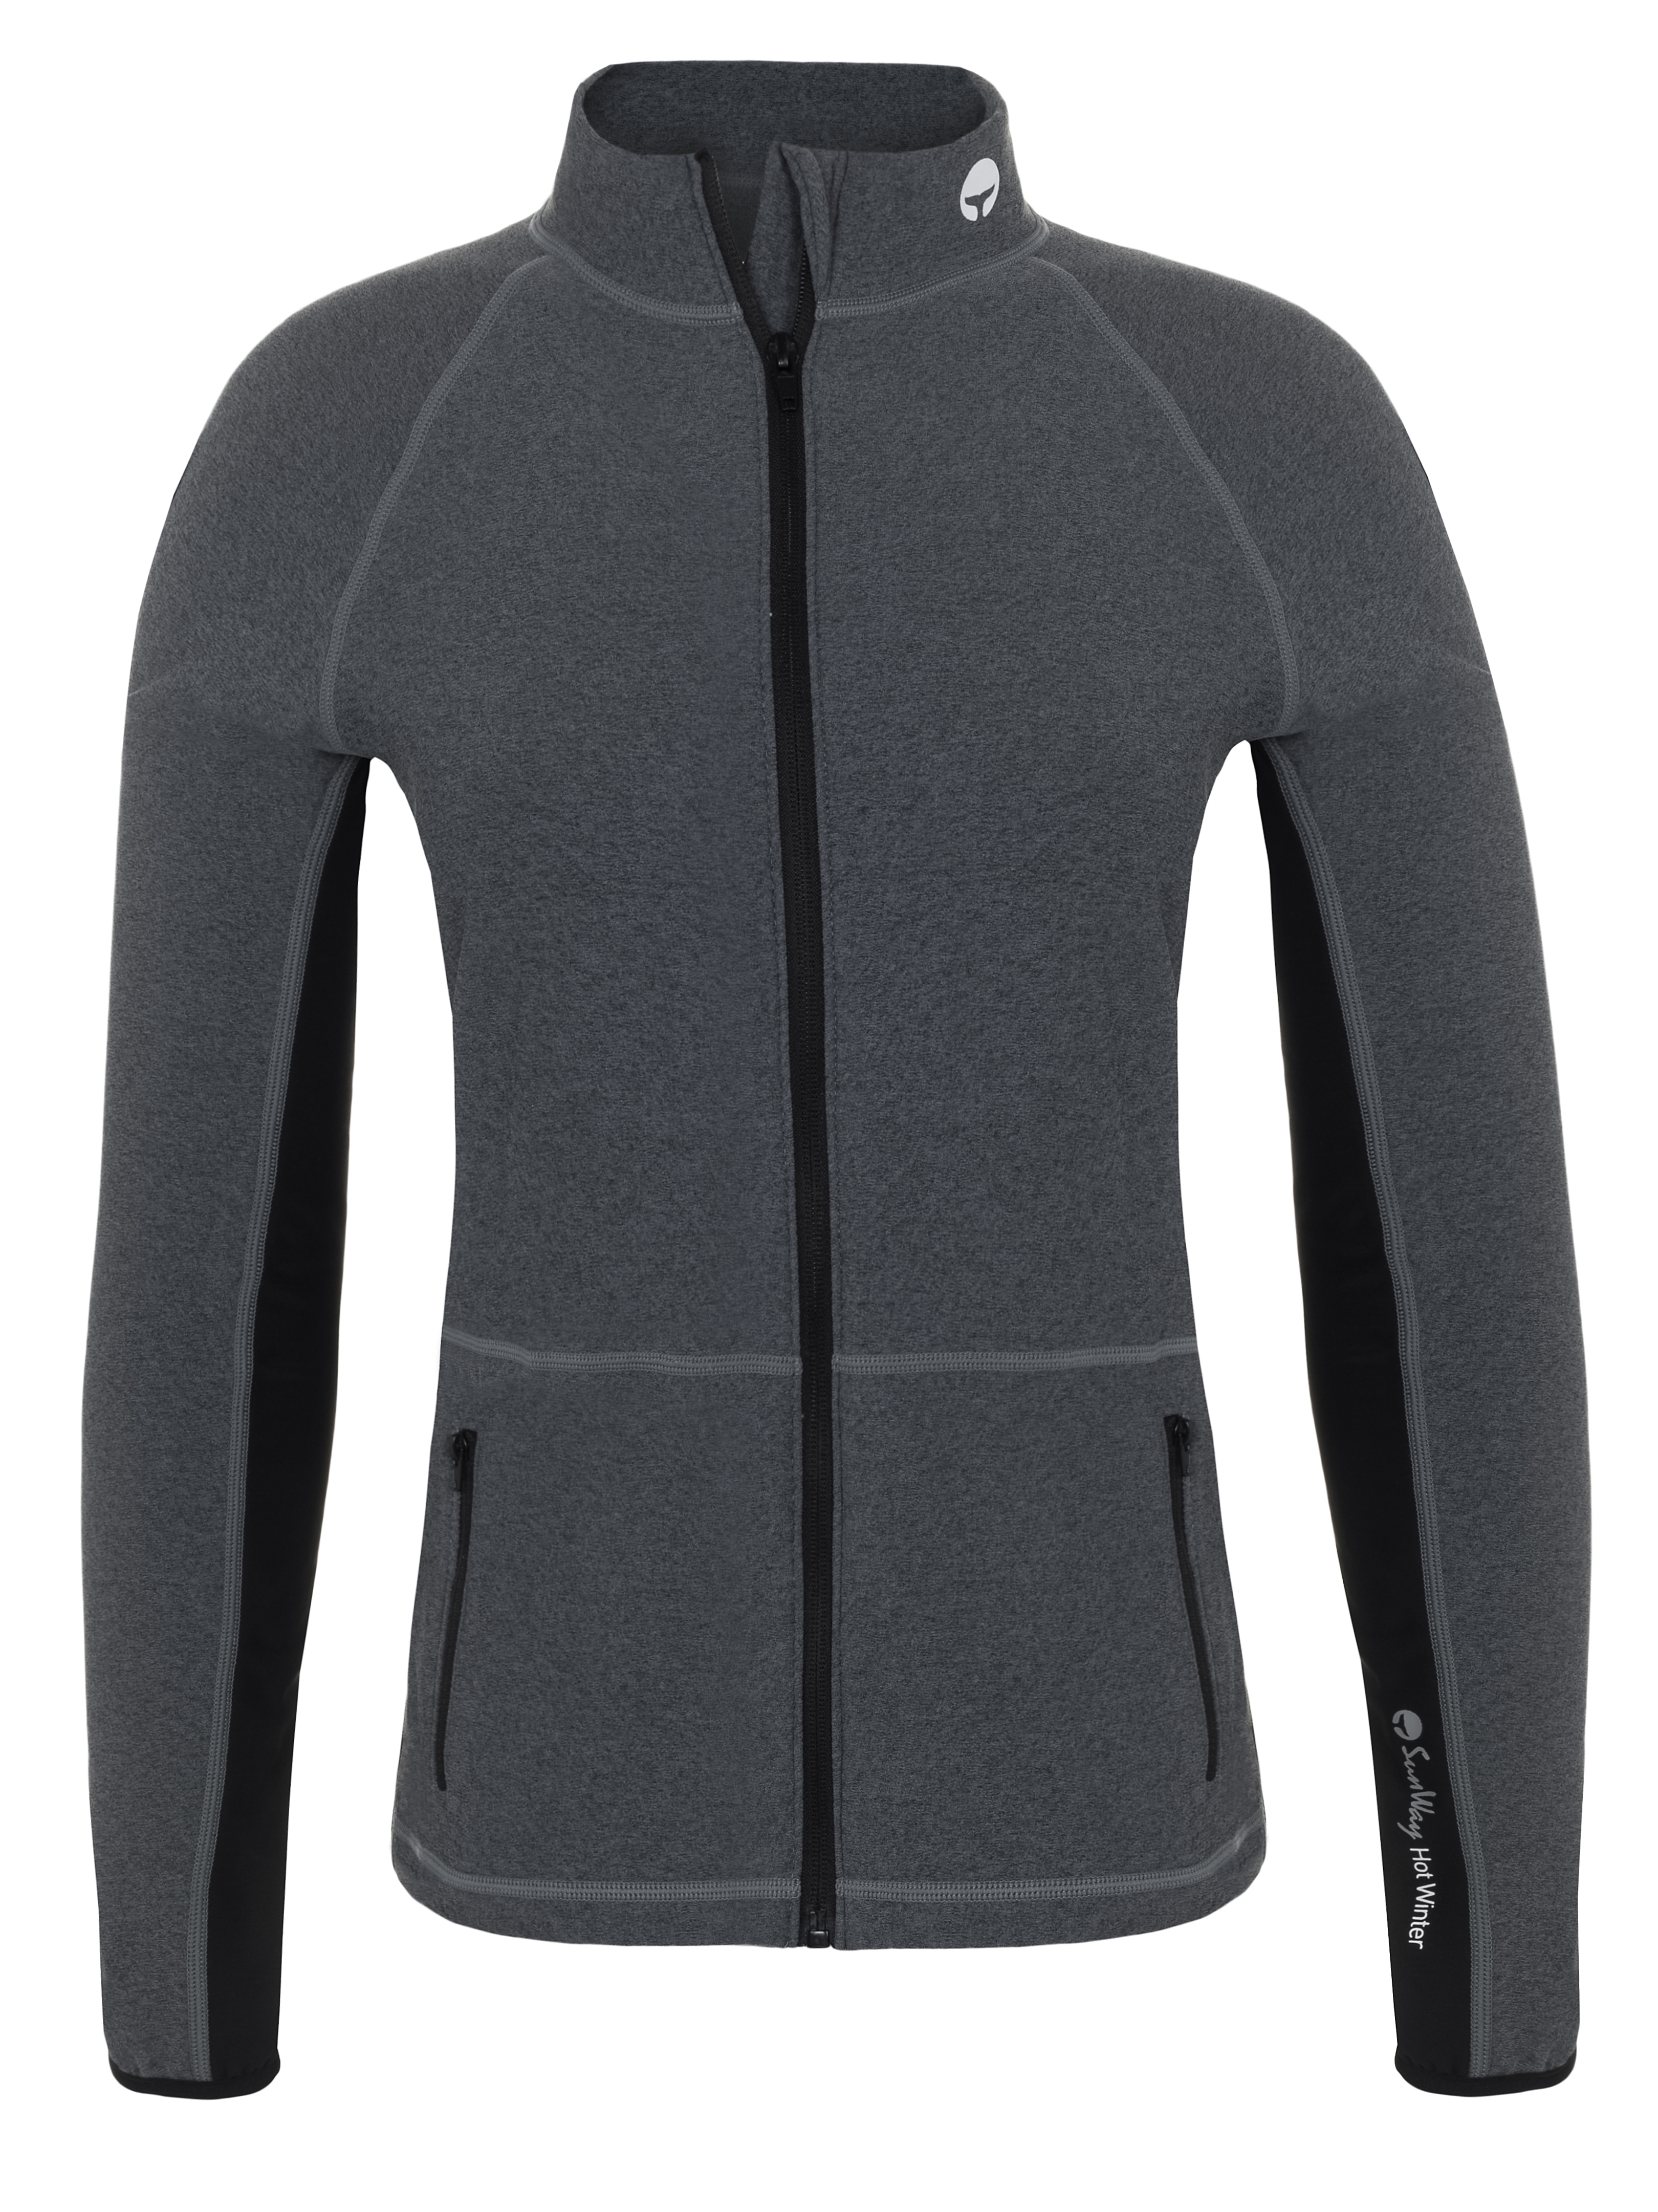 Thermal Lycra Fleece Shirt with Full zipper - Gray & Black on the sides